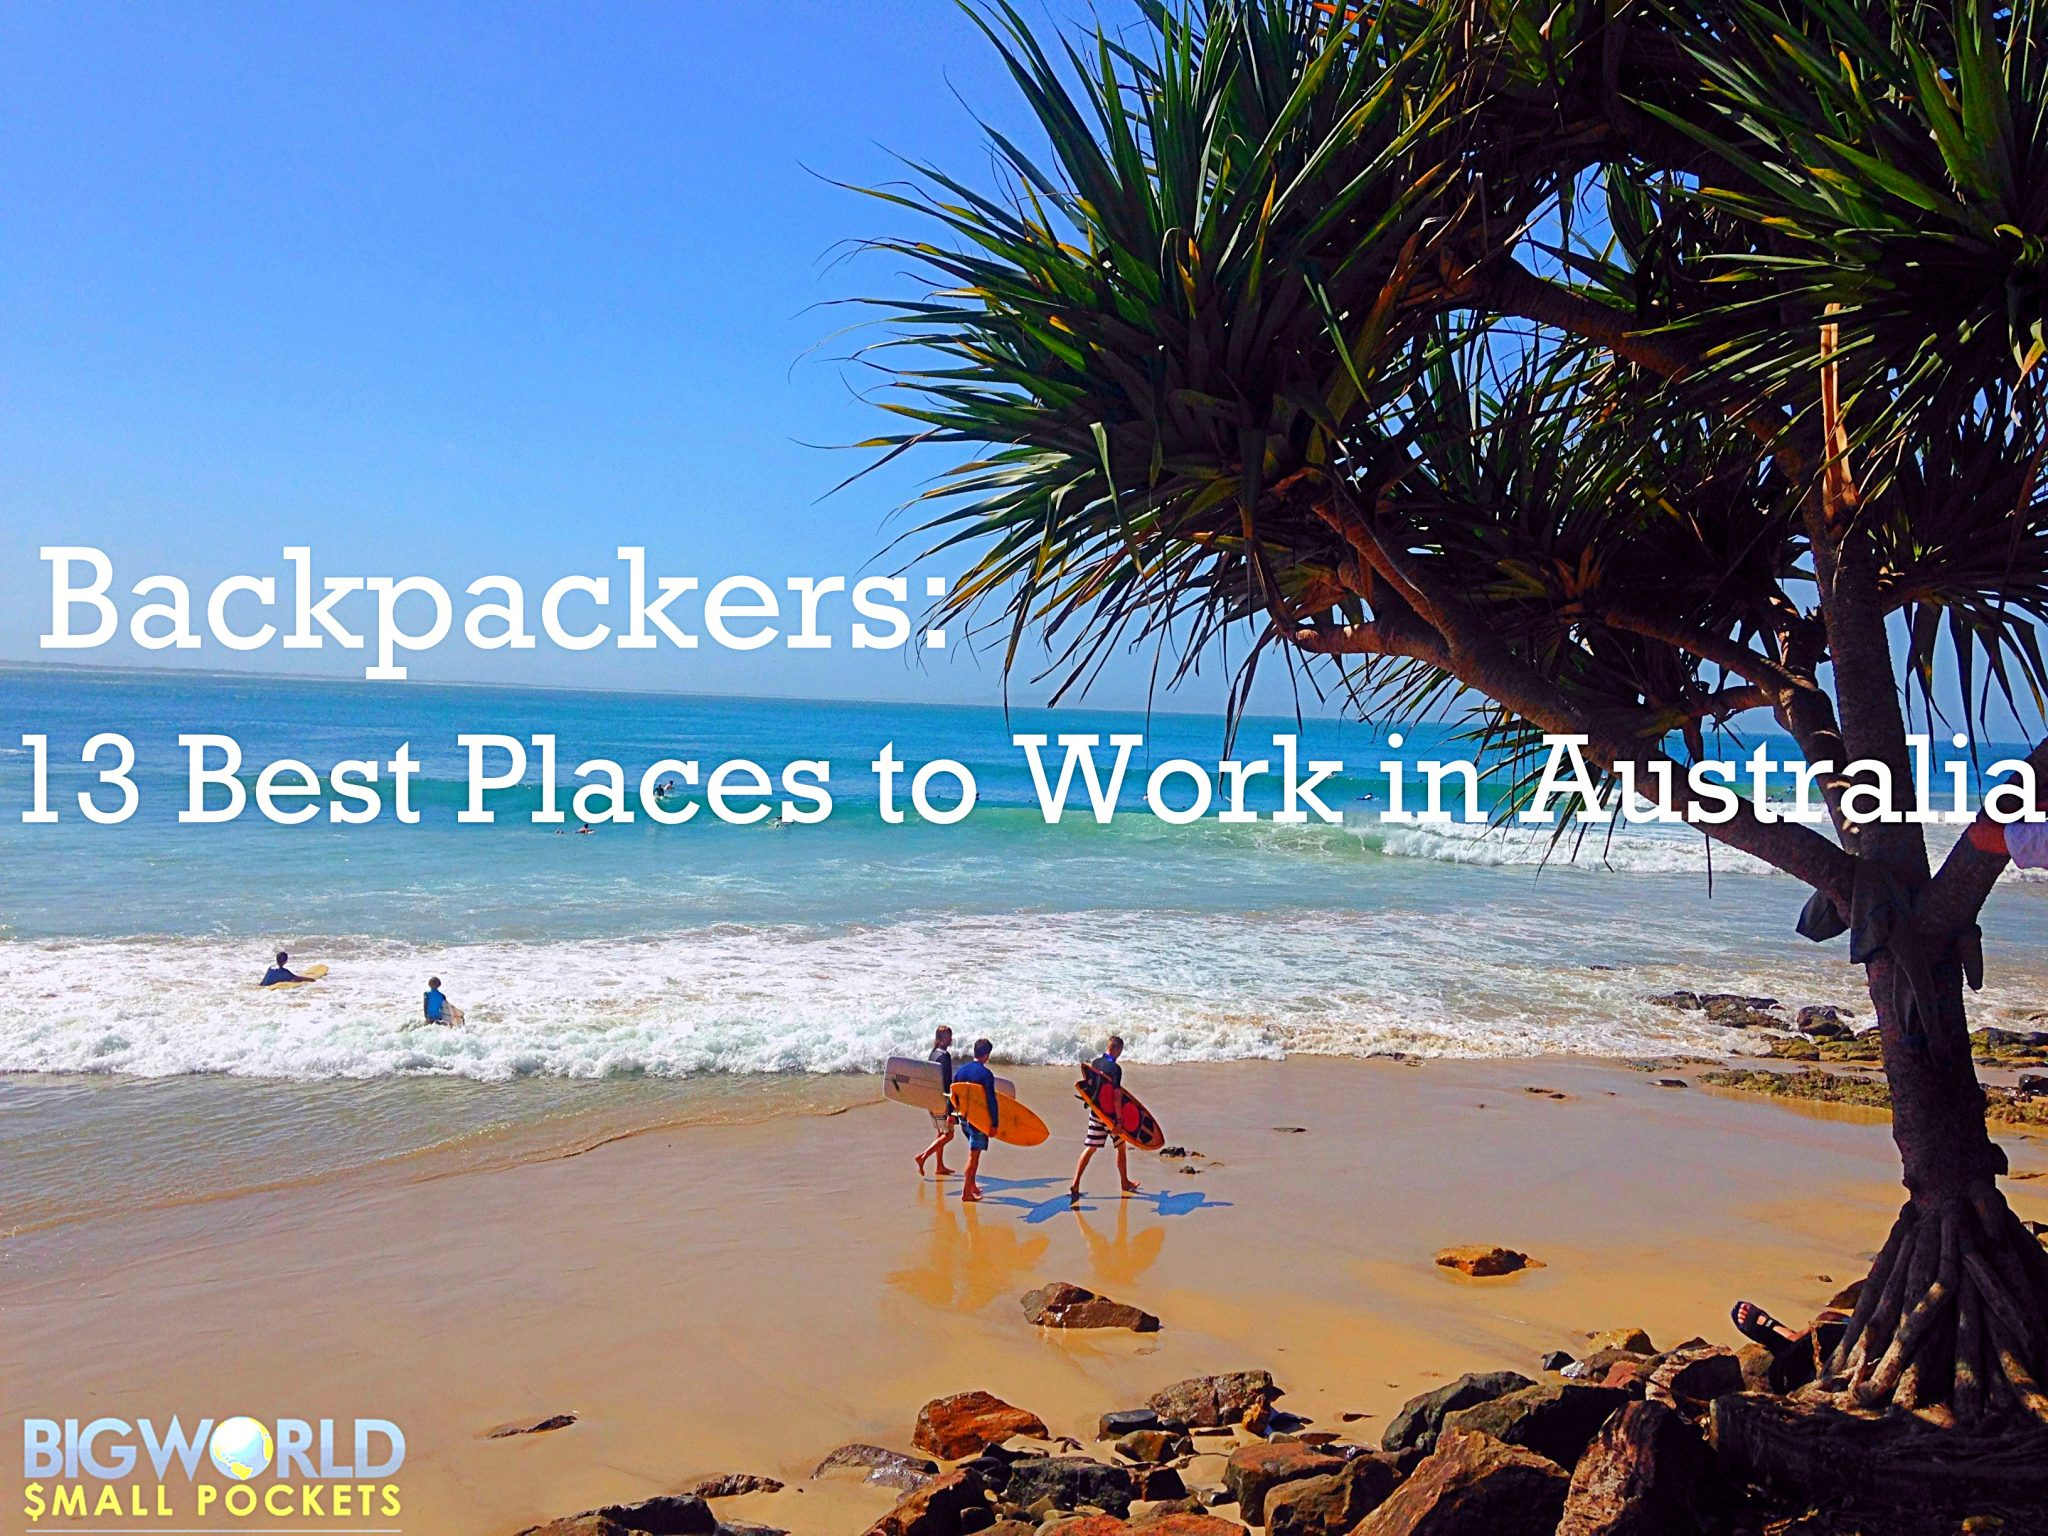 Backpackers 13 Best Places To Work In Australia Big World Small Pockets